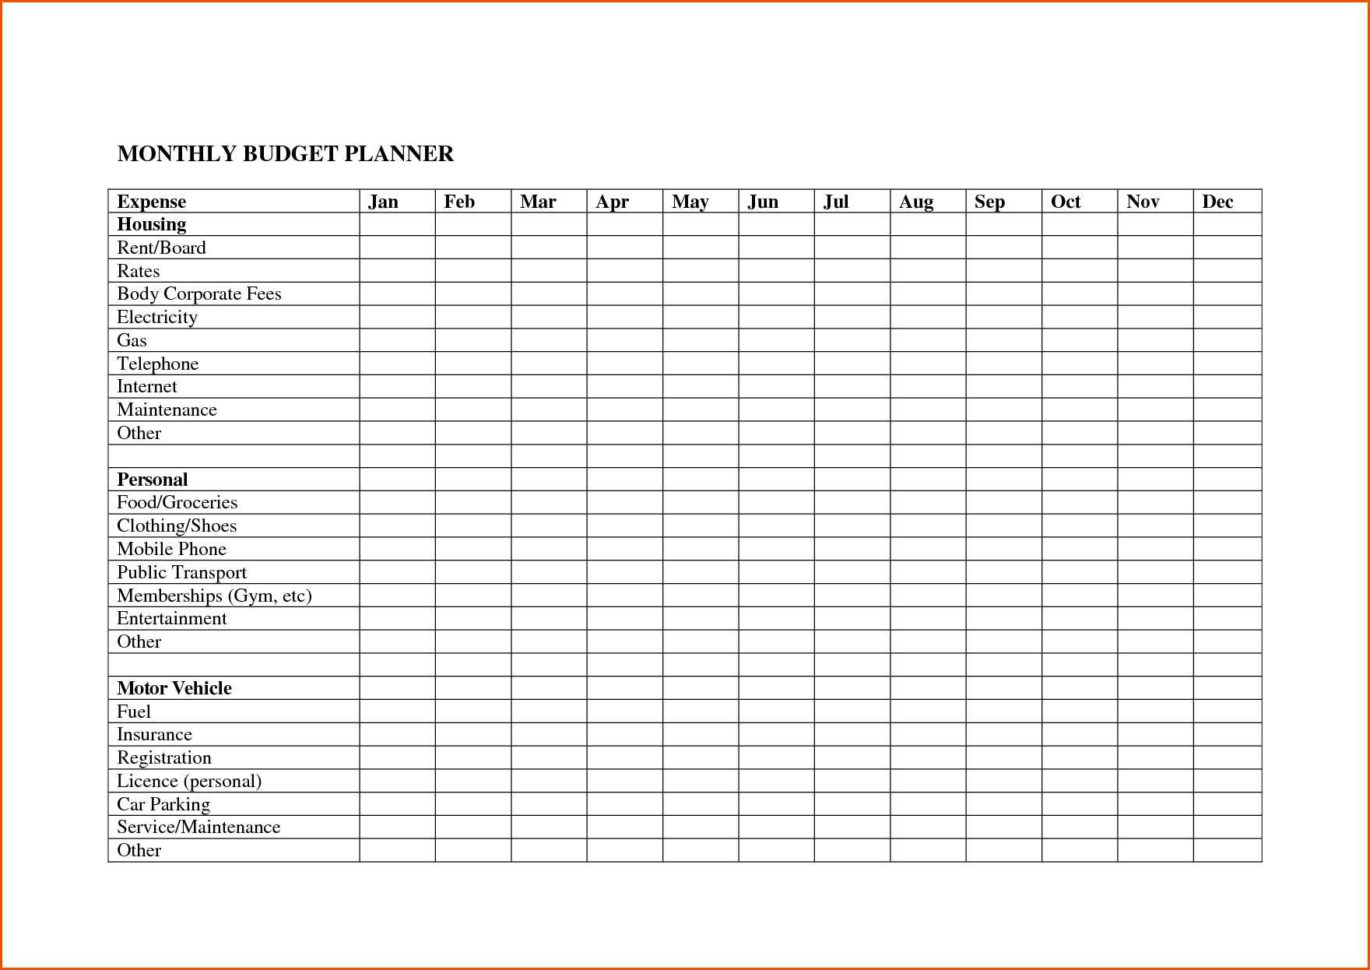 Spreadsheet Samples Free With Monthly Budget Excel Spreadsheet Template Free With Bill Plus Bills